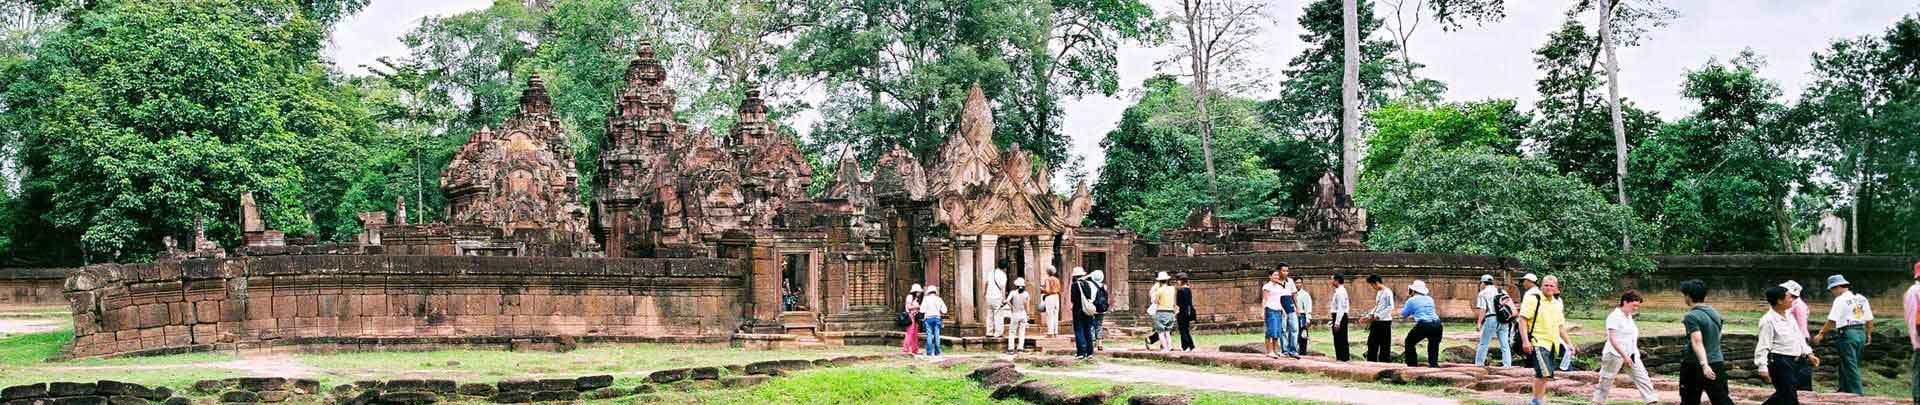 "Discover Magical Temple City of Angkor Wat <p><i>4 Days 3 Nights</i><br><i>Price from 170$</i></p><a class=""btn btn-danger rounded"" href=""http://www.tourismcambodia.com/tours/cambodia/angkor-temple-tours/49/discover-magical-temple-city-of-angkor-wat.htm"">VIEW DETAILS</a>"